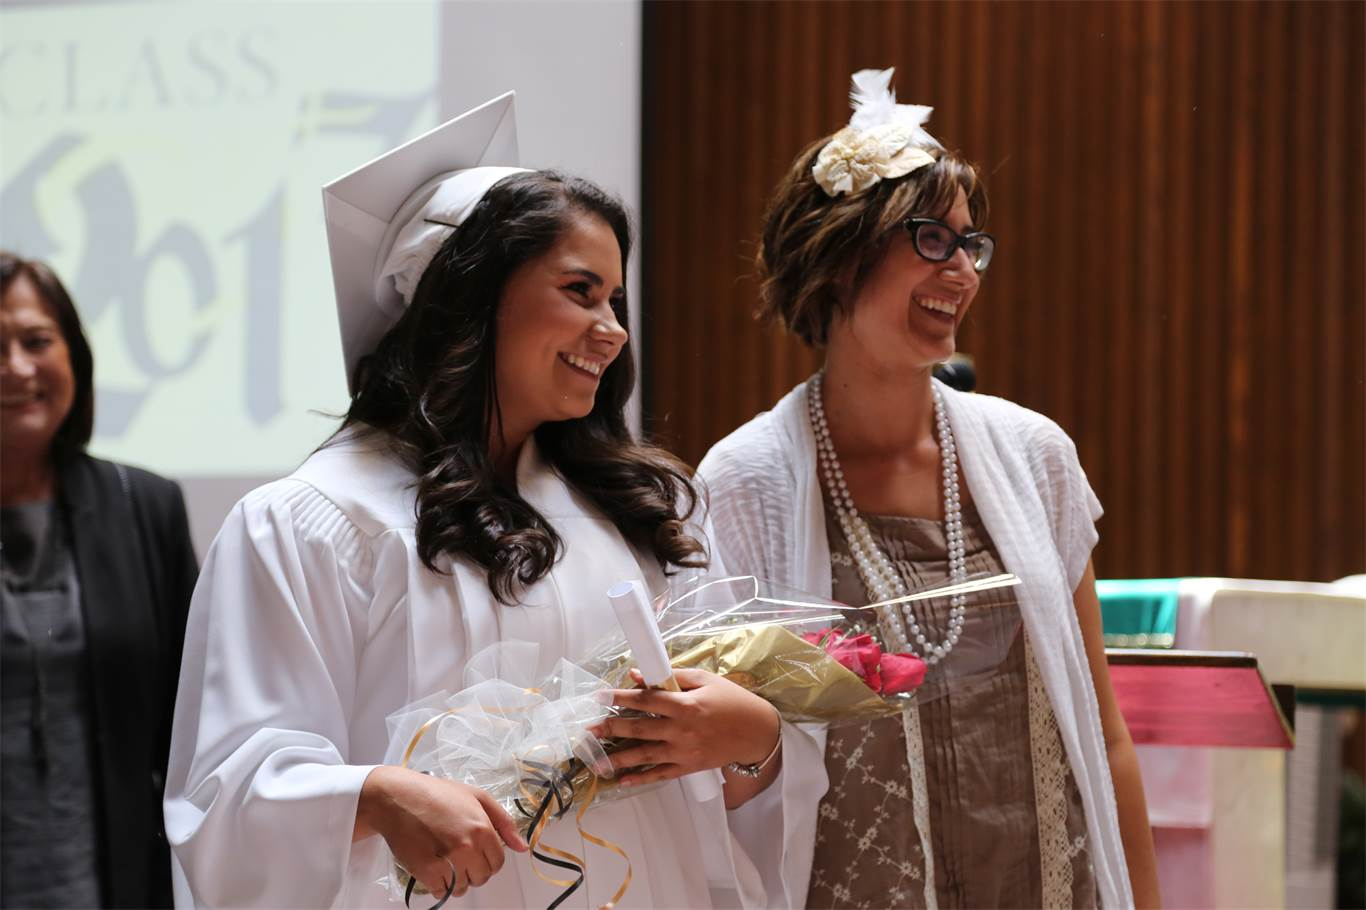 St. Martin's Manor graduation celebrates bright future